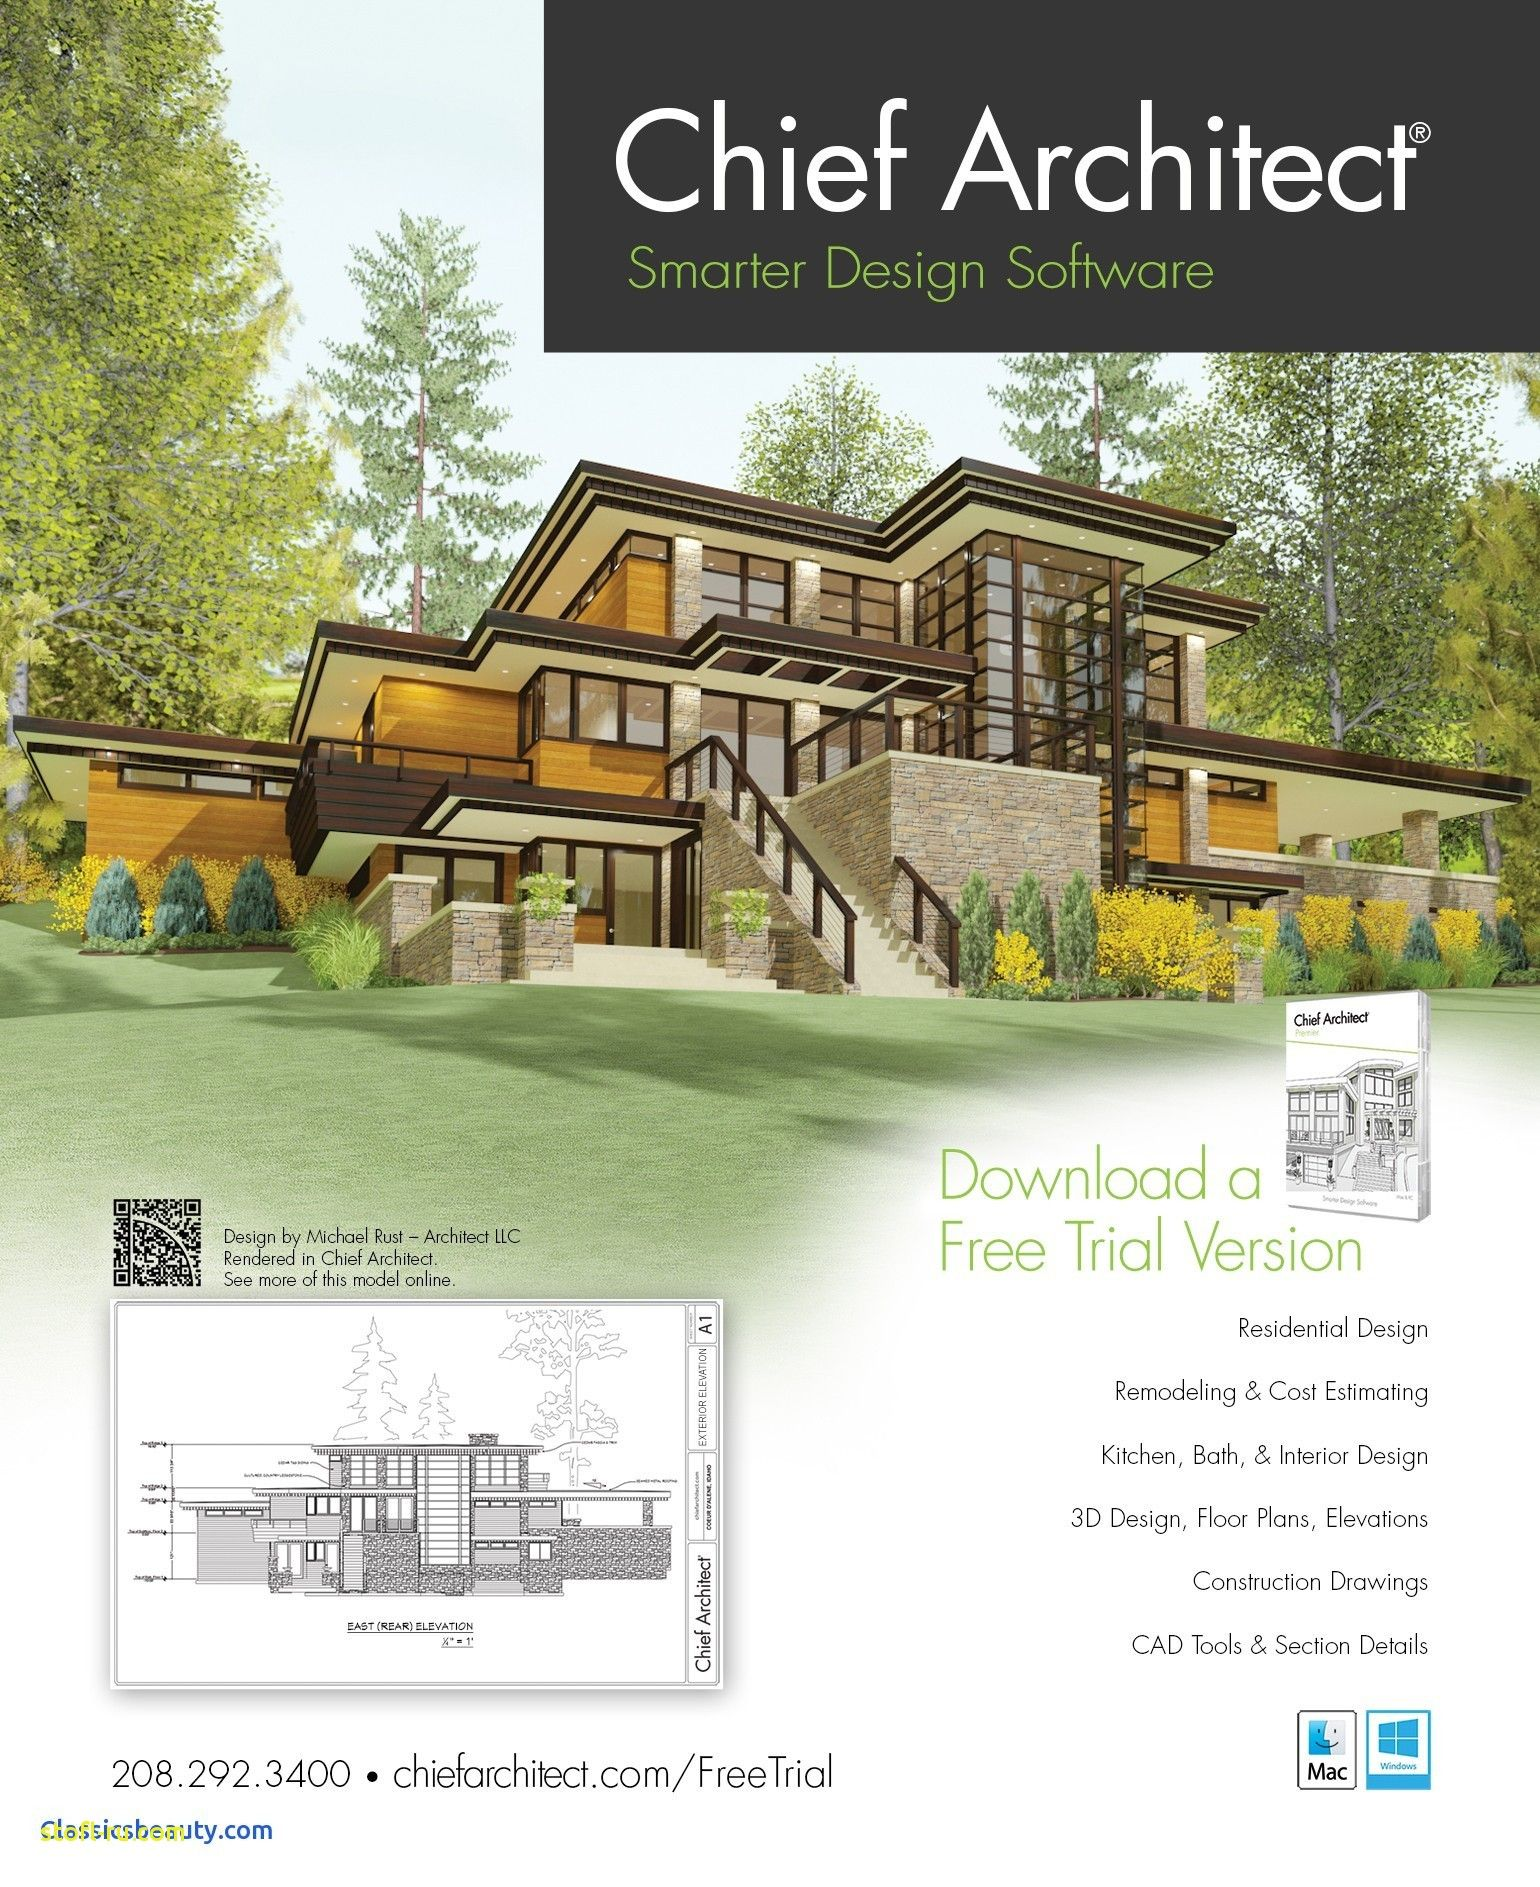 Wonderful Punch Home Design Free Trial #homedesign #punchhomedesign  #homedesignsoftwarefreedownloadfullversion #homedesignideas  #homedesignsoftwareformac #